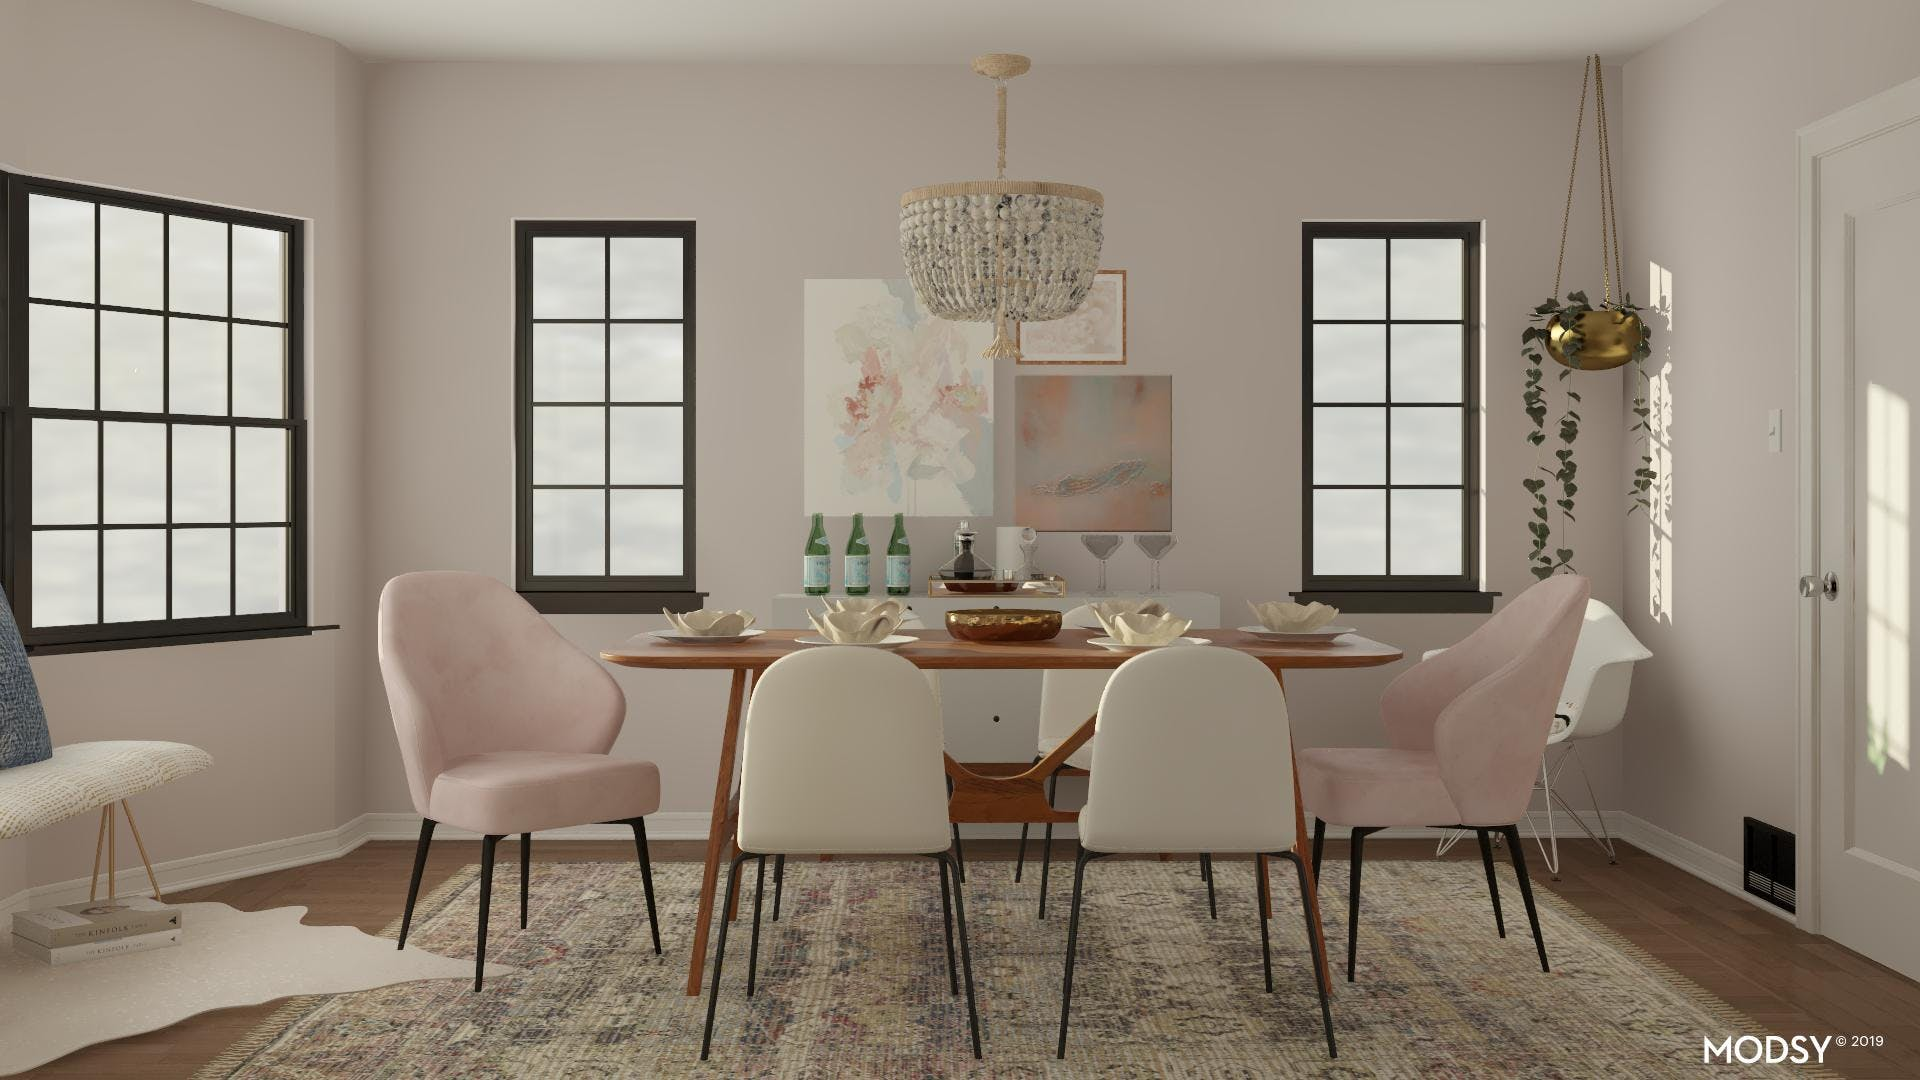 Pretty in Pastels: Modern Dining